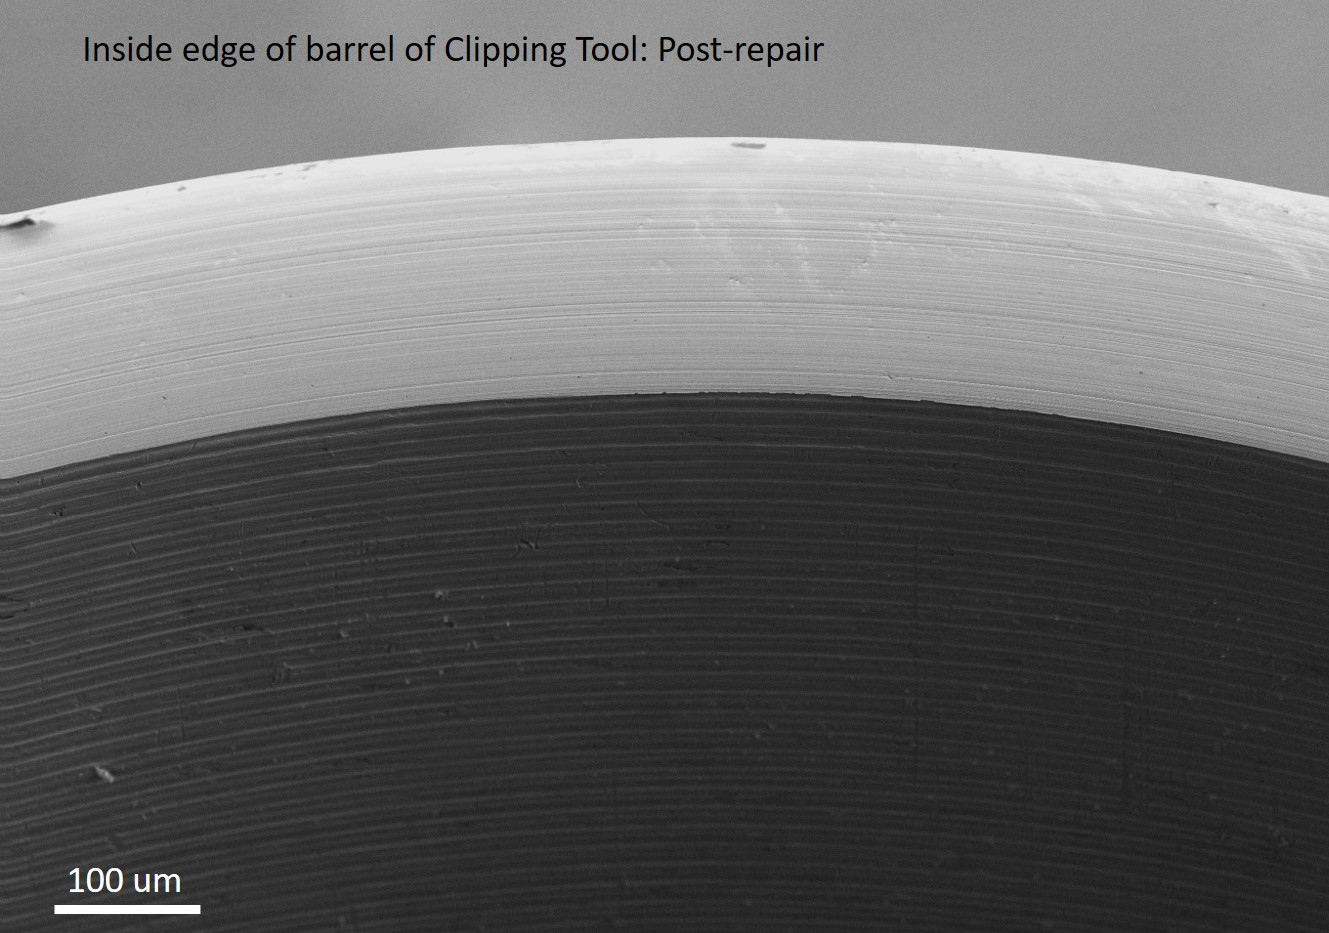 Repaired Clipping Tool